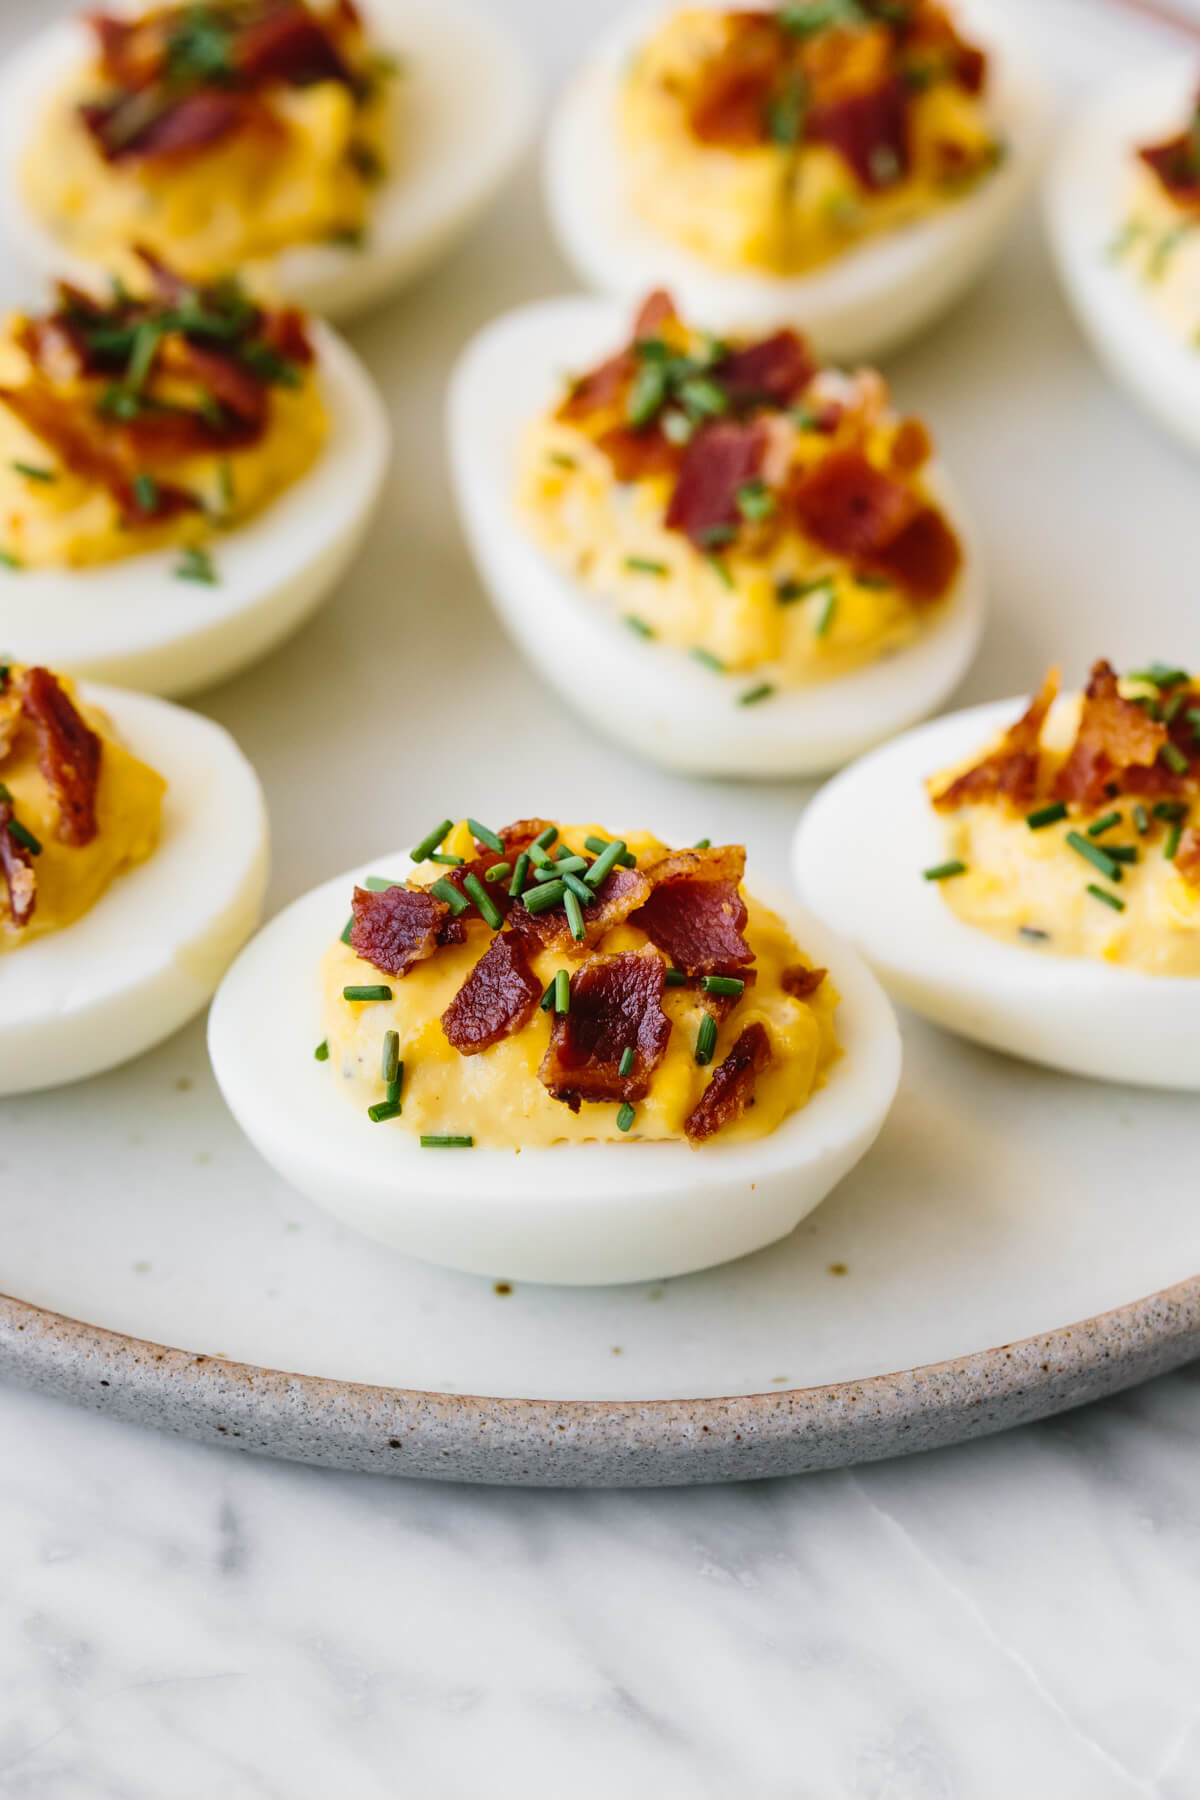 A plate of deviled eggs with bacon and chives sprinkled on top.